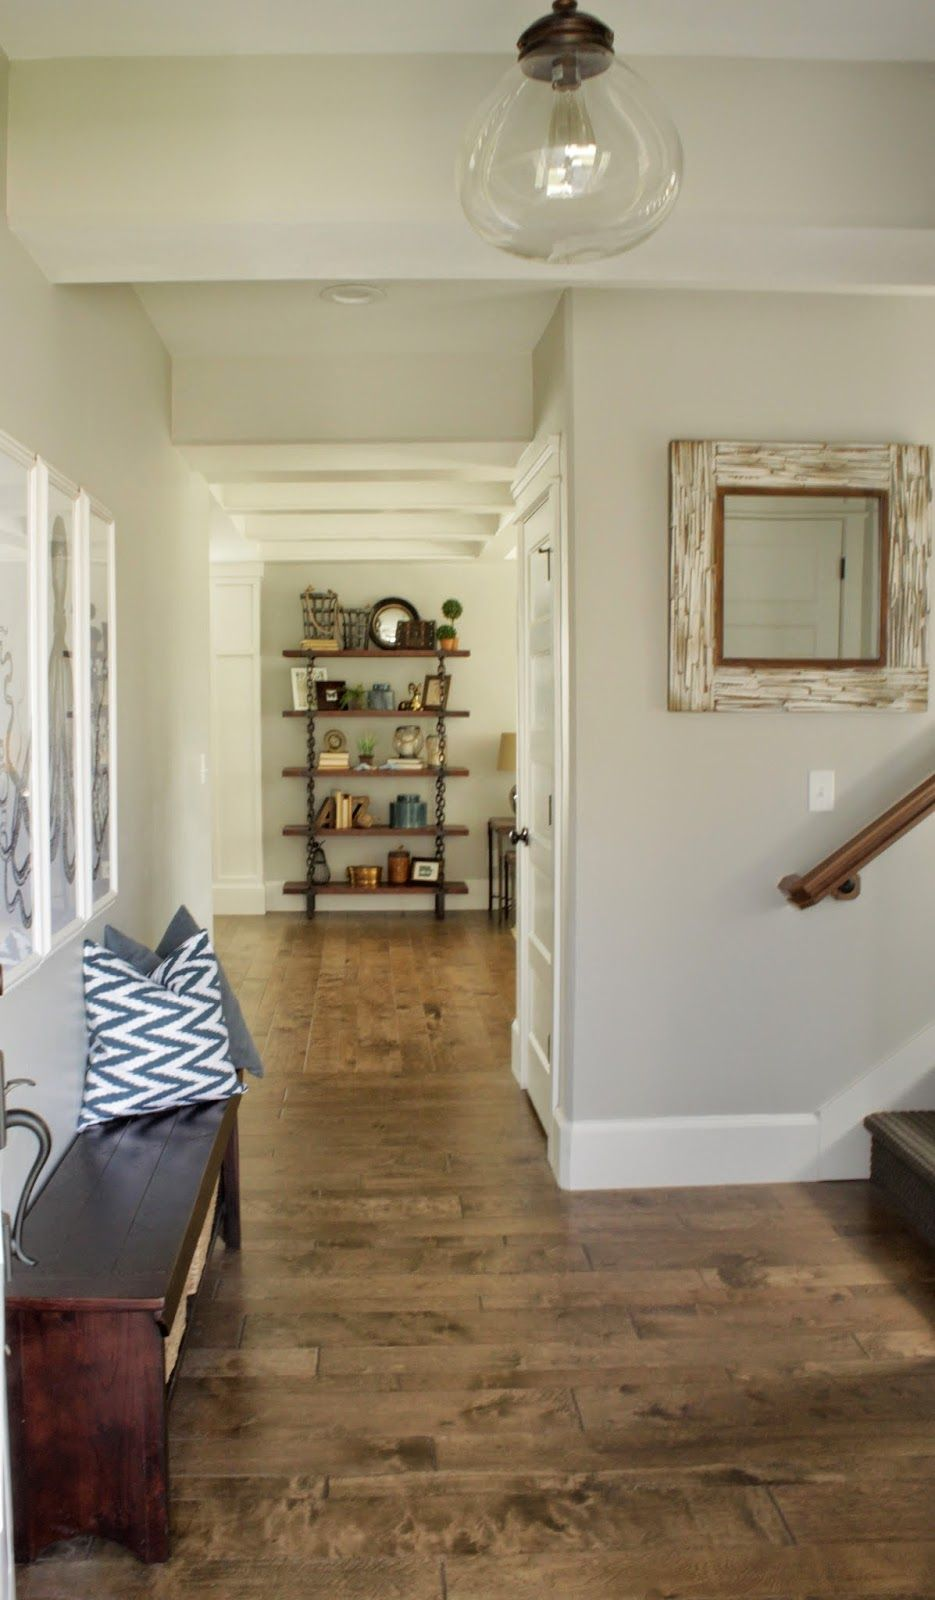 The interior paint color throughout the house is sherwin Grey interior walls